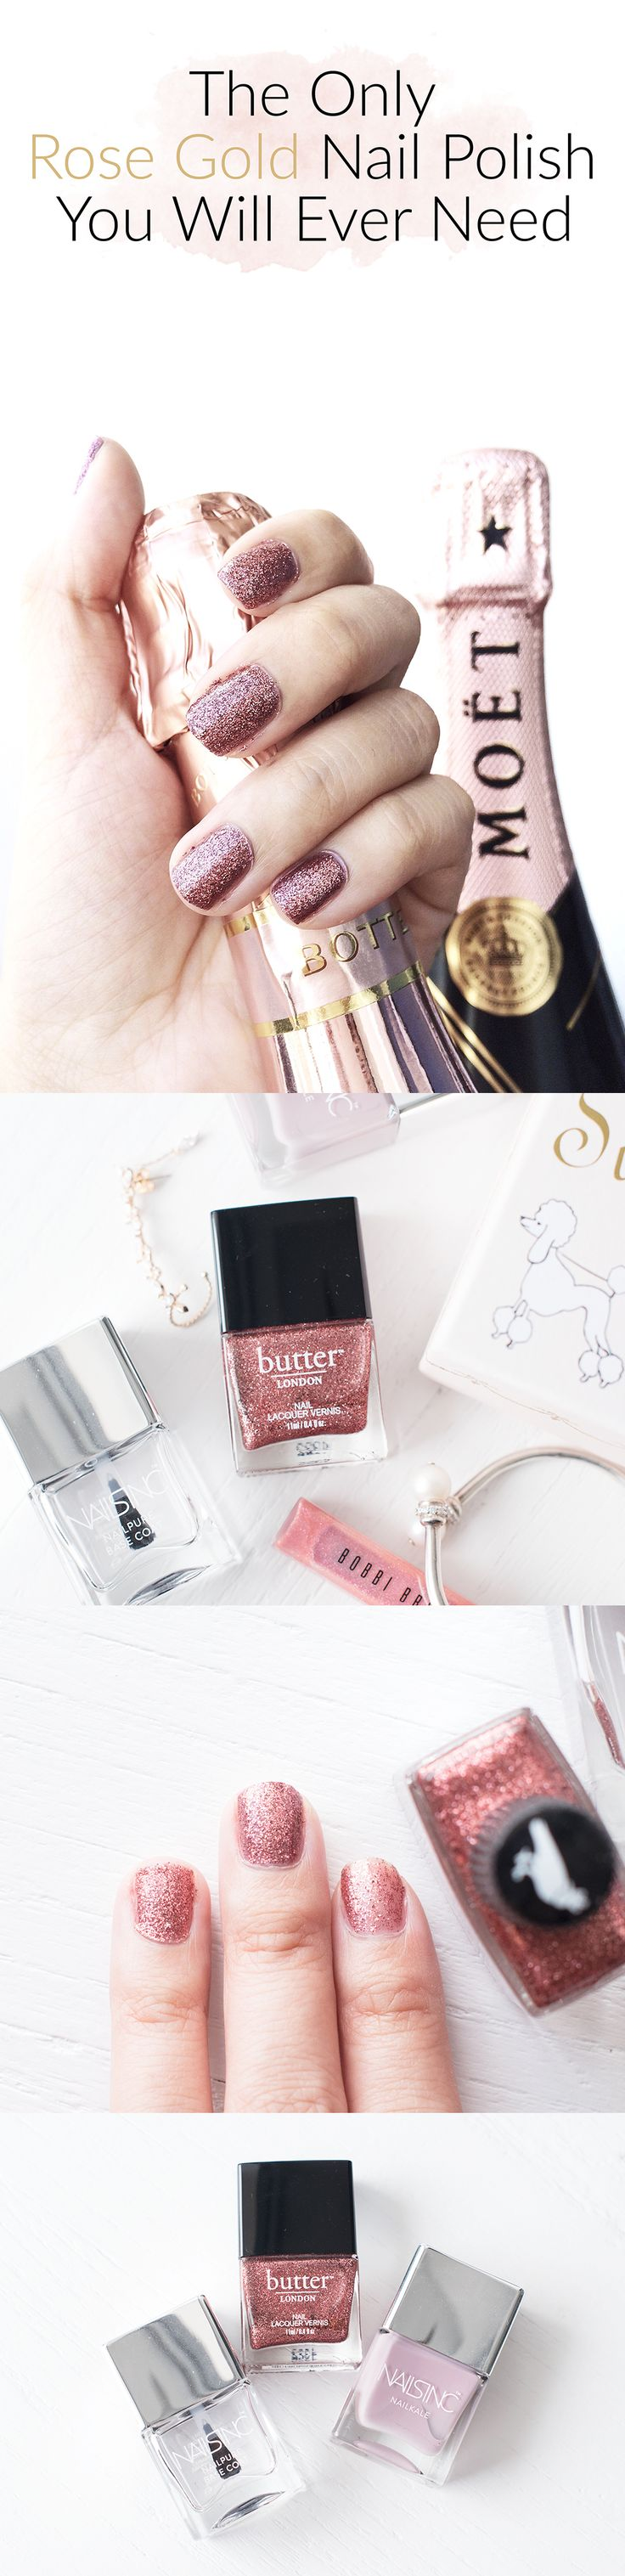 1000 Ideas About Rose Gold Nail Polish On Pinterest Rose Gold